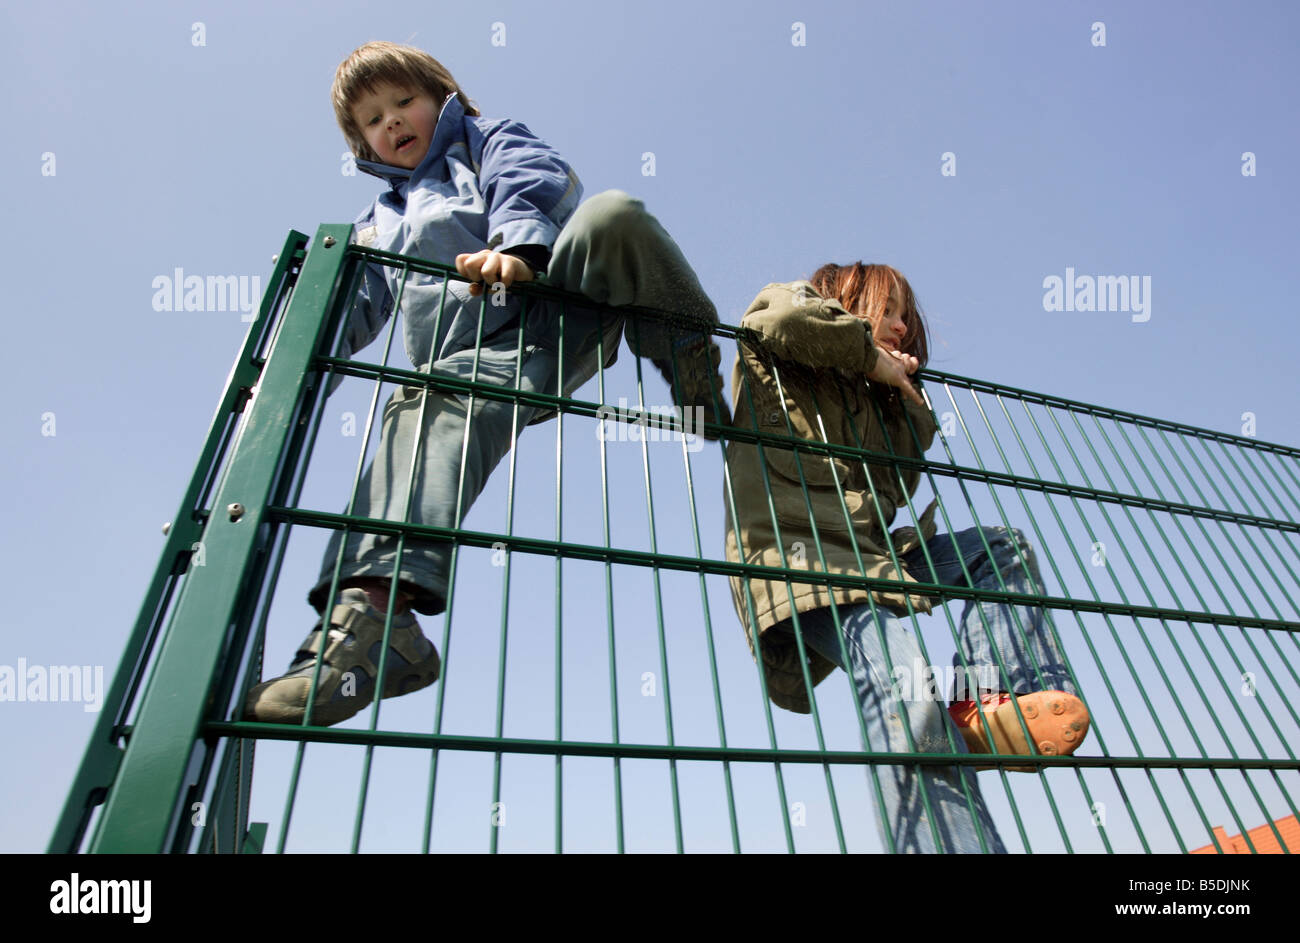 A boy and a girl climbing over a fence - Stock Image